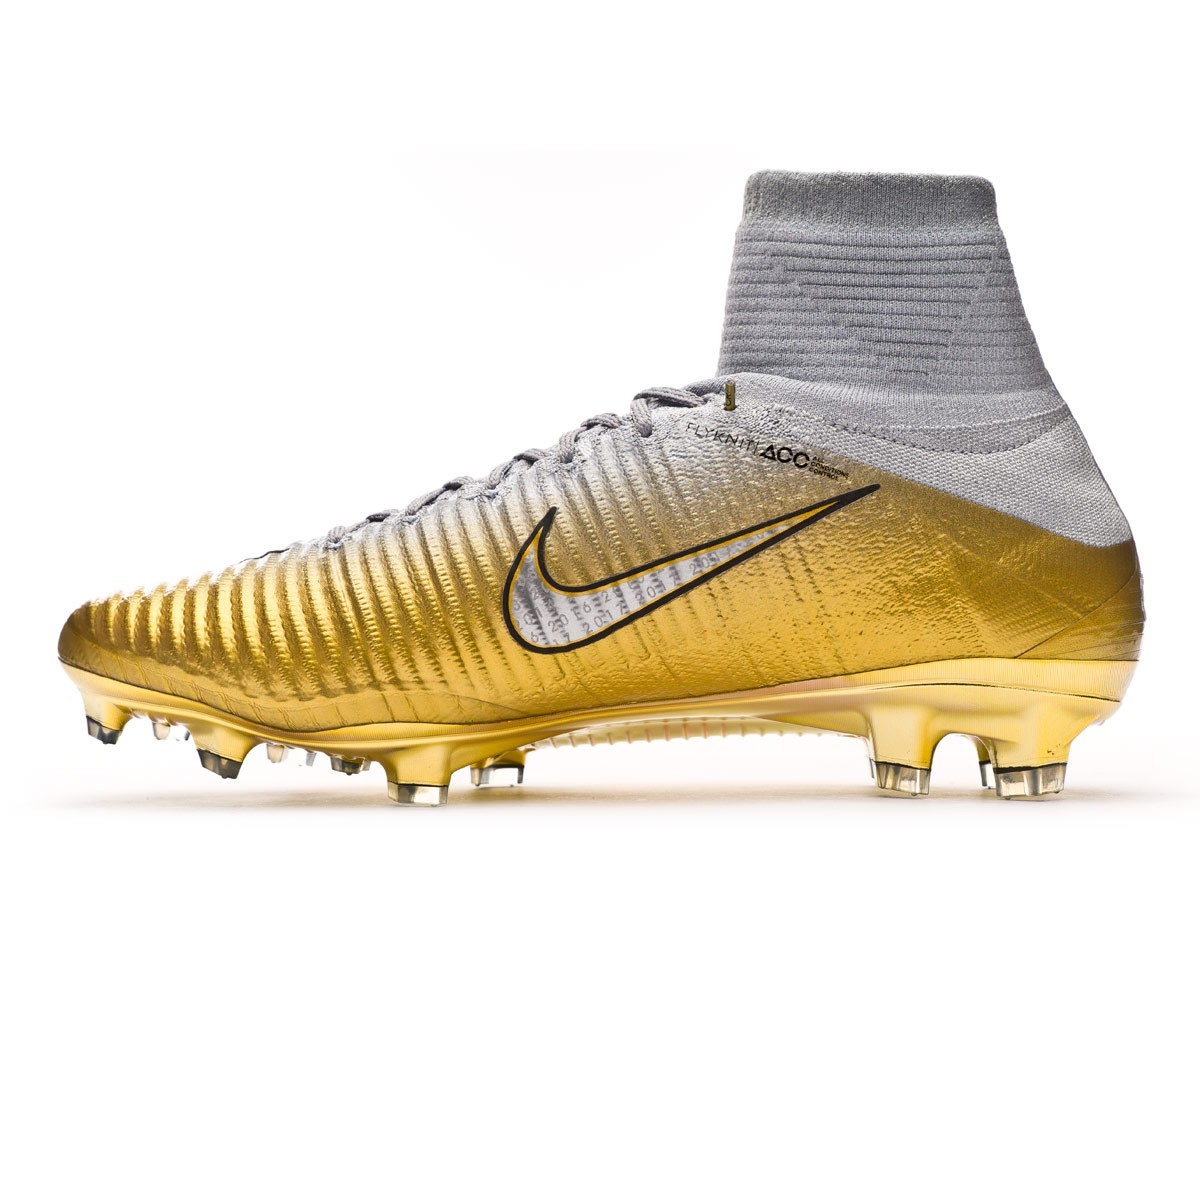 quality design 282f7 9405d Boot Nike Mercurial Superfly V CR7 Quinto Triunfo FG Pure ...